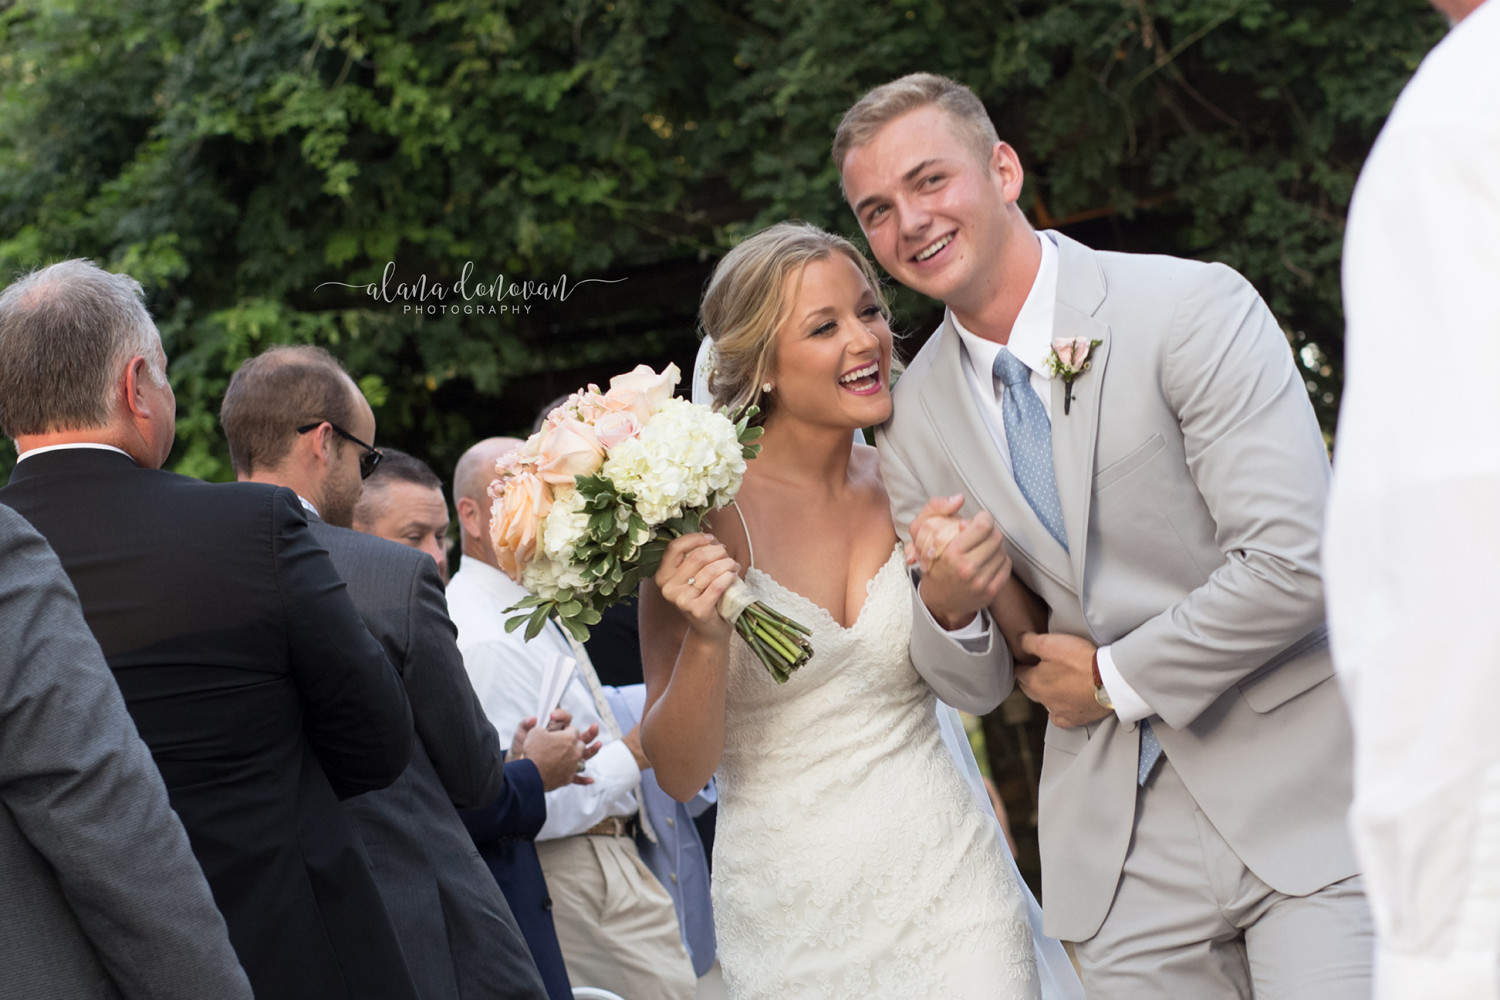 Alana Donovan Photography | Summer Wedding